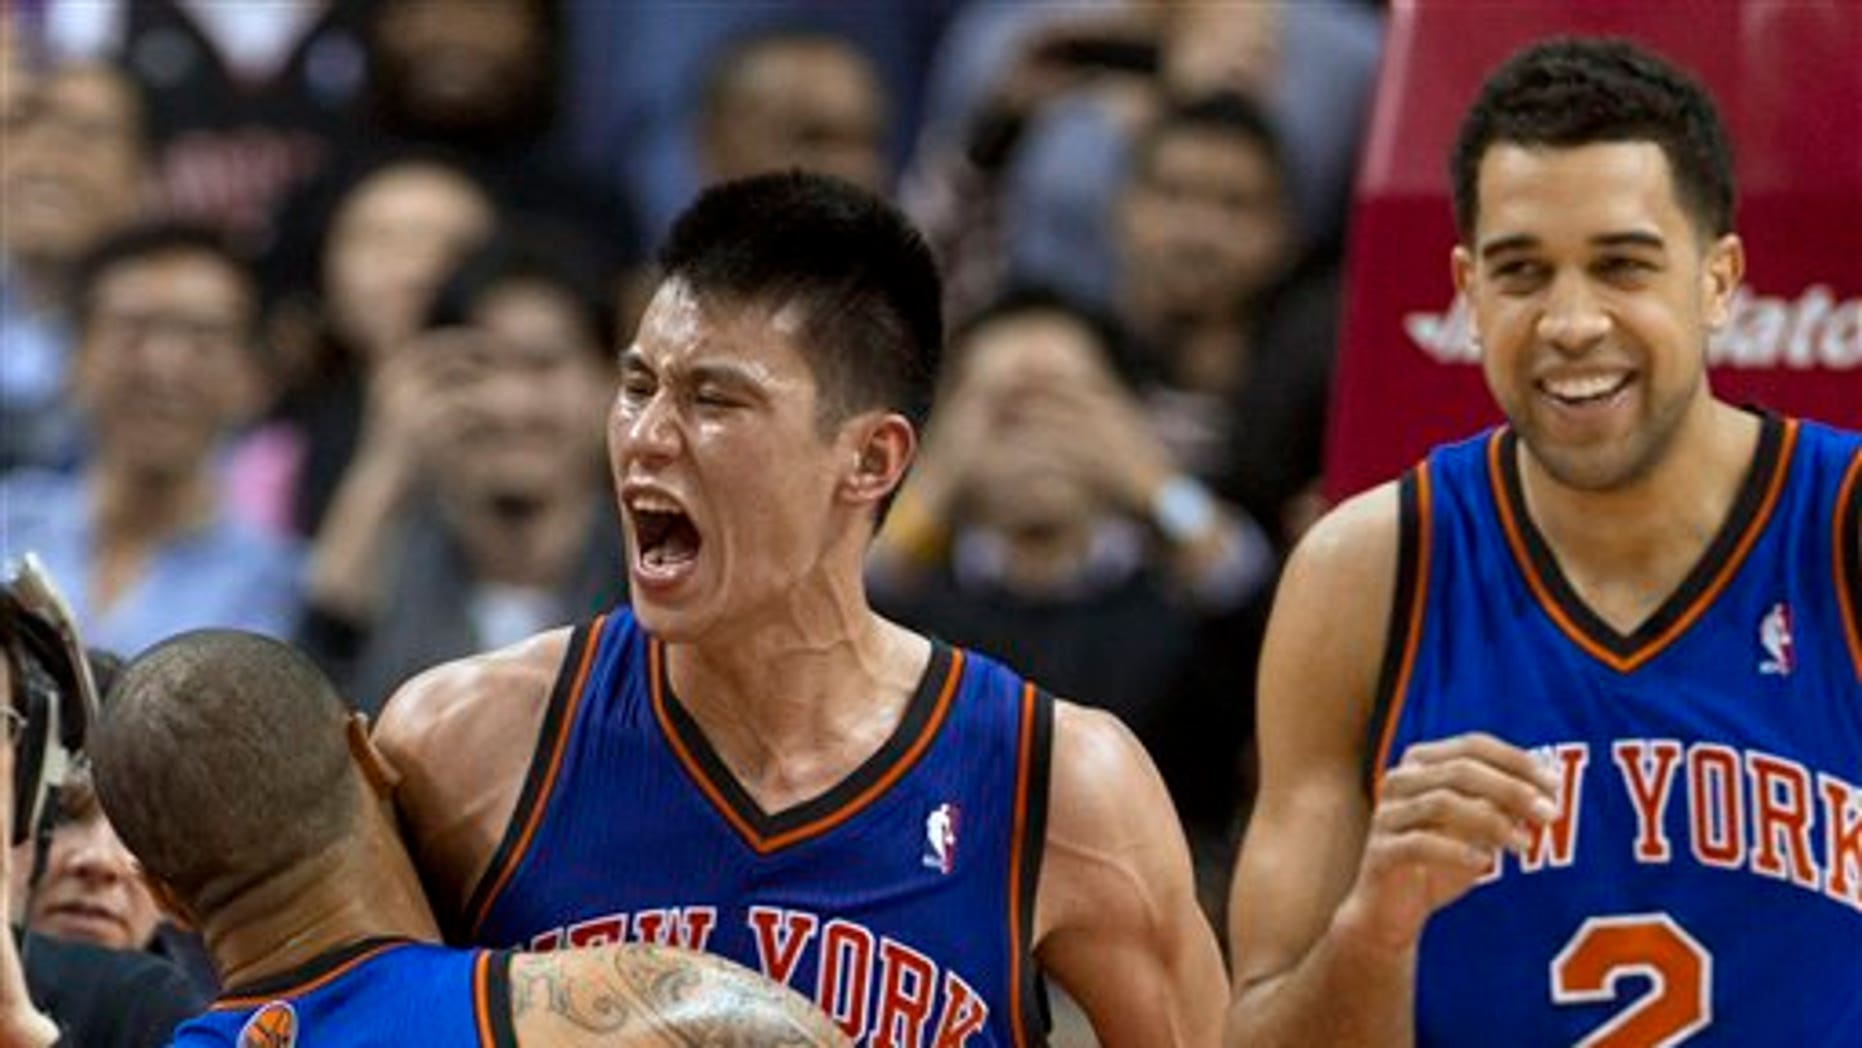 Feb. 14: New York Knicks guard Jeremy Lin (17) celebrates with teammates Tyson Chandler and Landry Fields (2) after his game-winning 3-pointer against the Toronto Raptors in an NBA basketball game in Toronto.